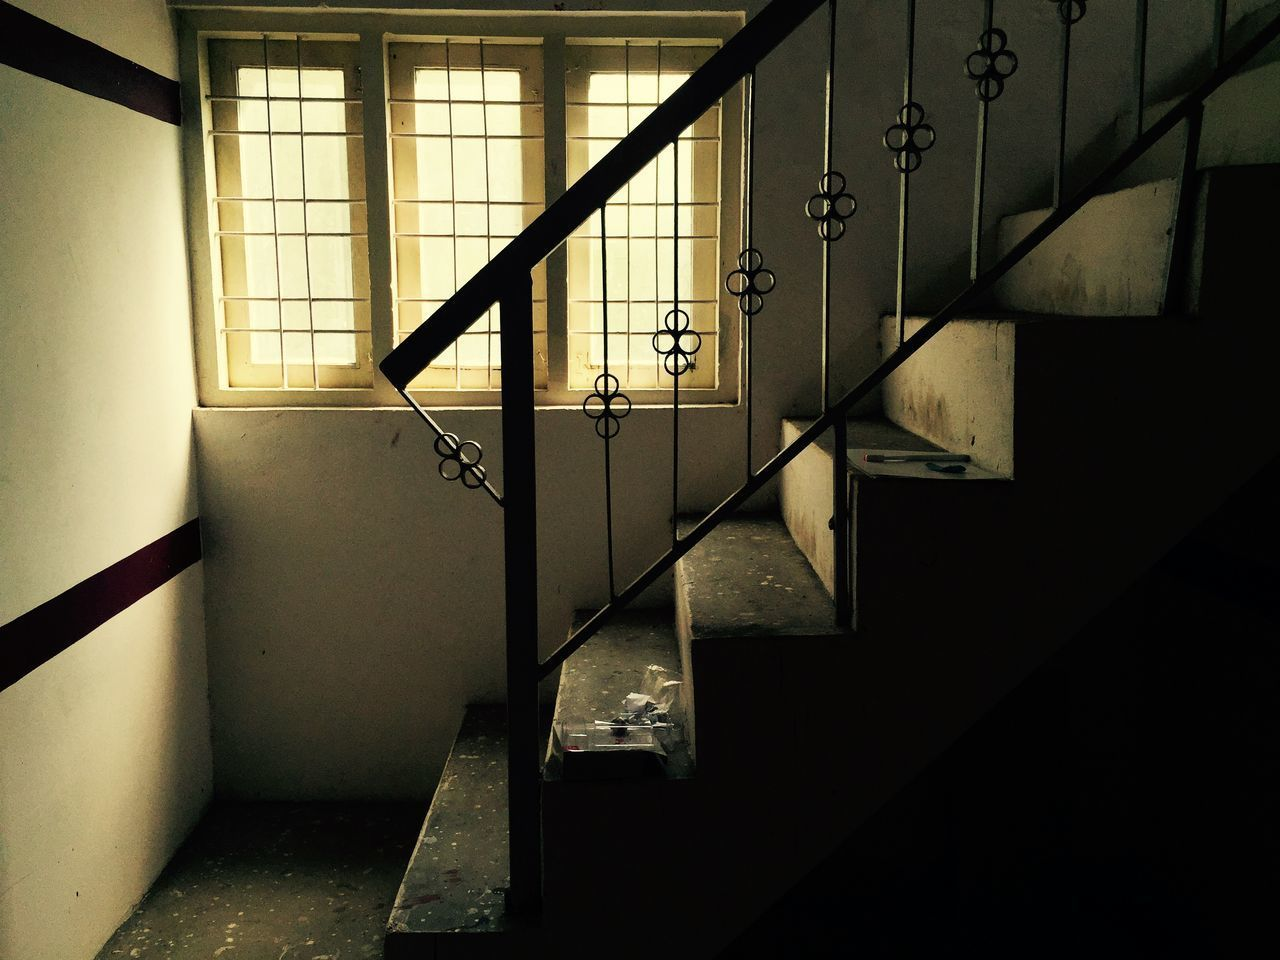 indoors, architecture, built structure, wall - building feature, window, railing, building, house, wall, no people, sunlight, home interior, staircase, building exterior, ceiling, metal, day, steps, shadow, steps and staircases